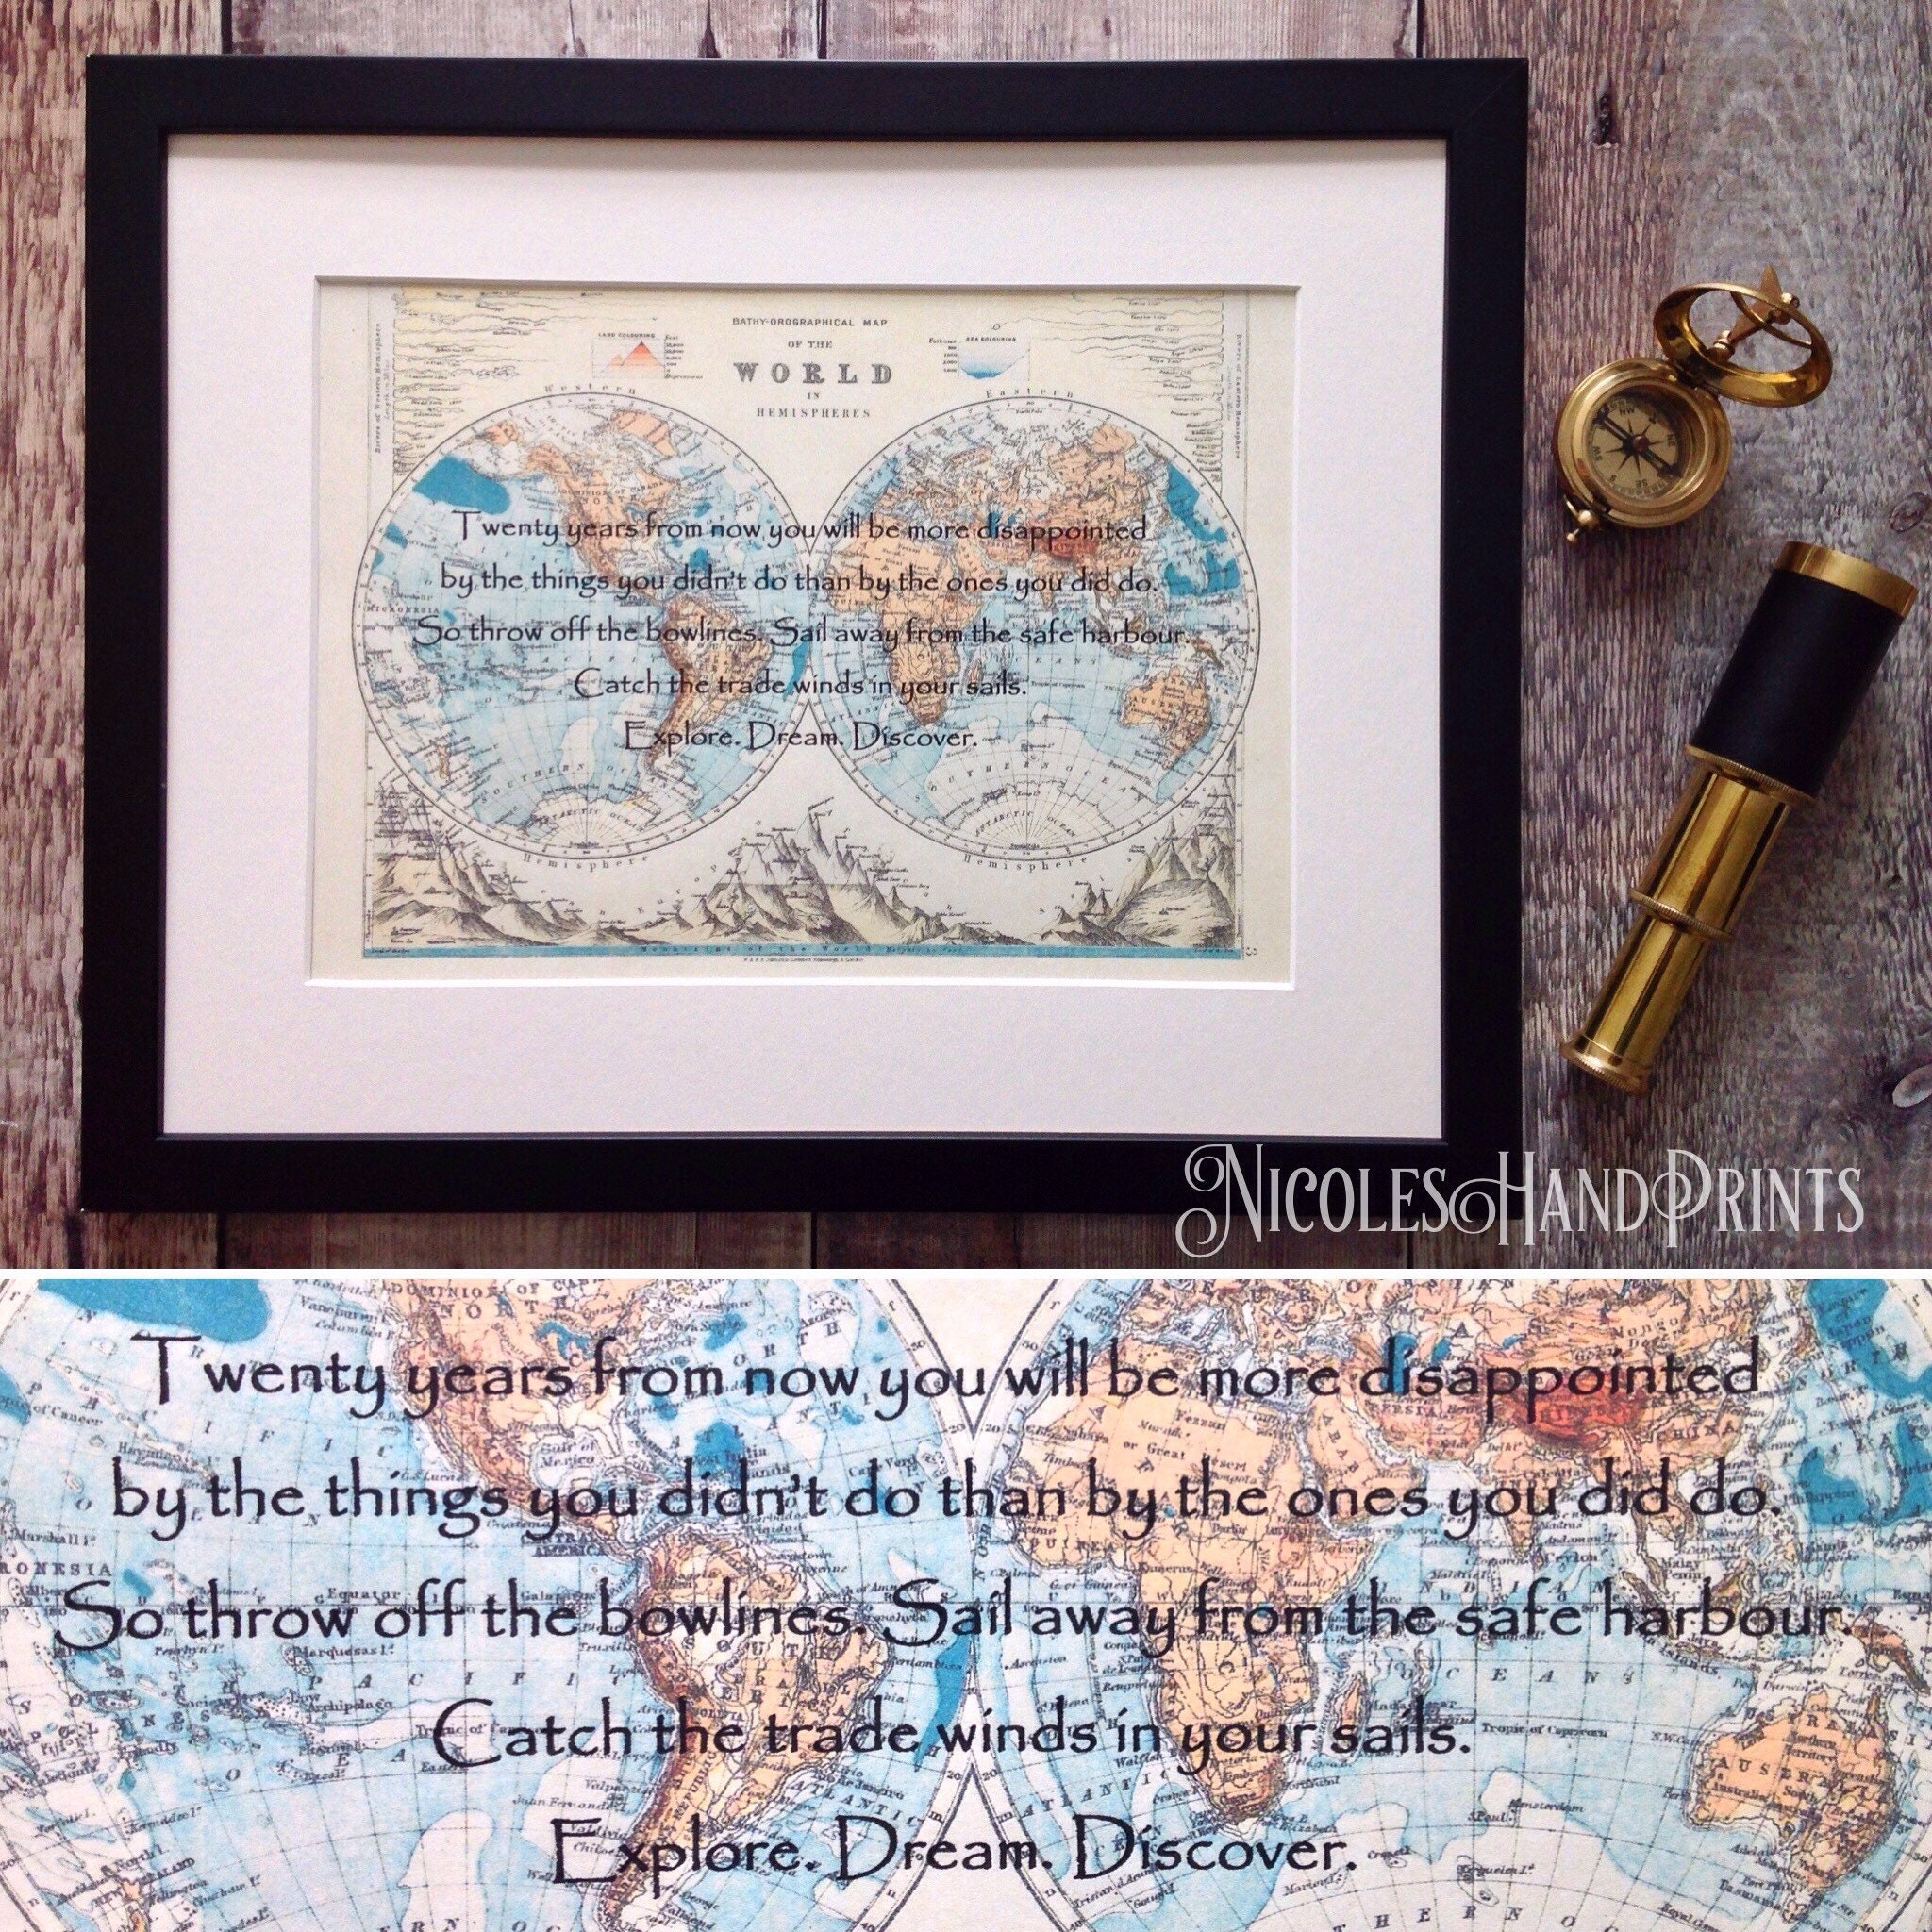 Inspiring Mark Twain Quote Twenty Years From Now Explore Dream - World map to mark your travels